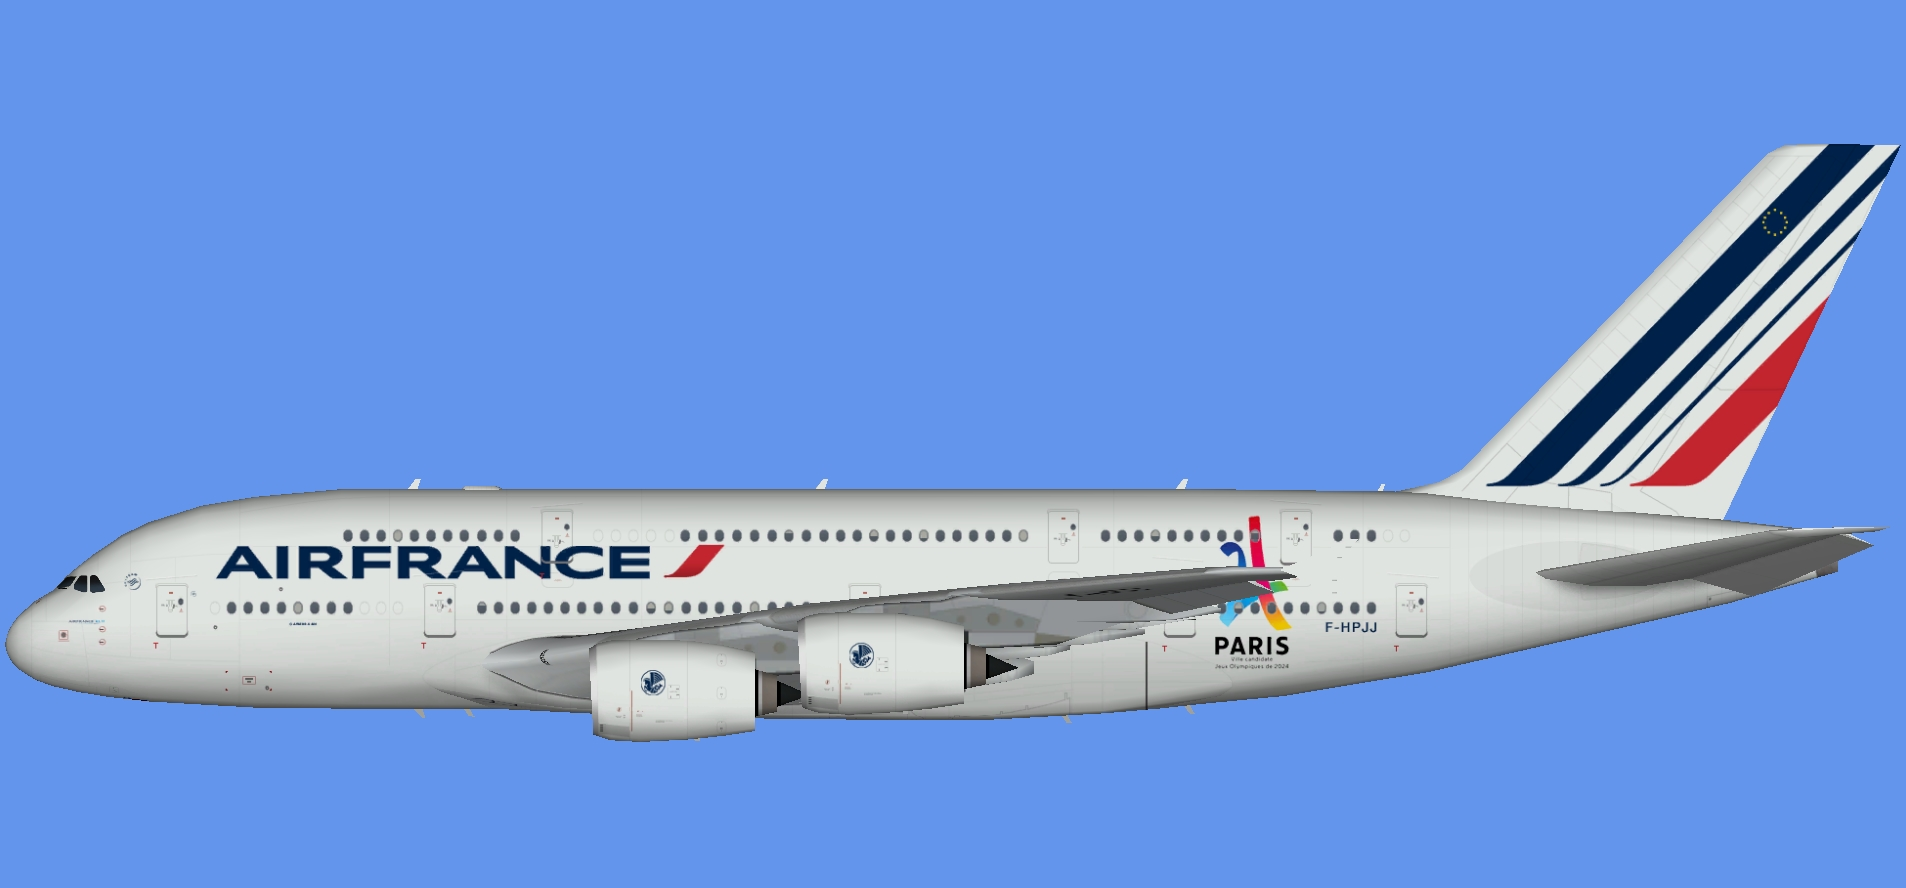 Air France A380 Paris 2024 (TFS)